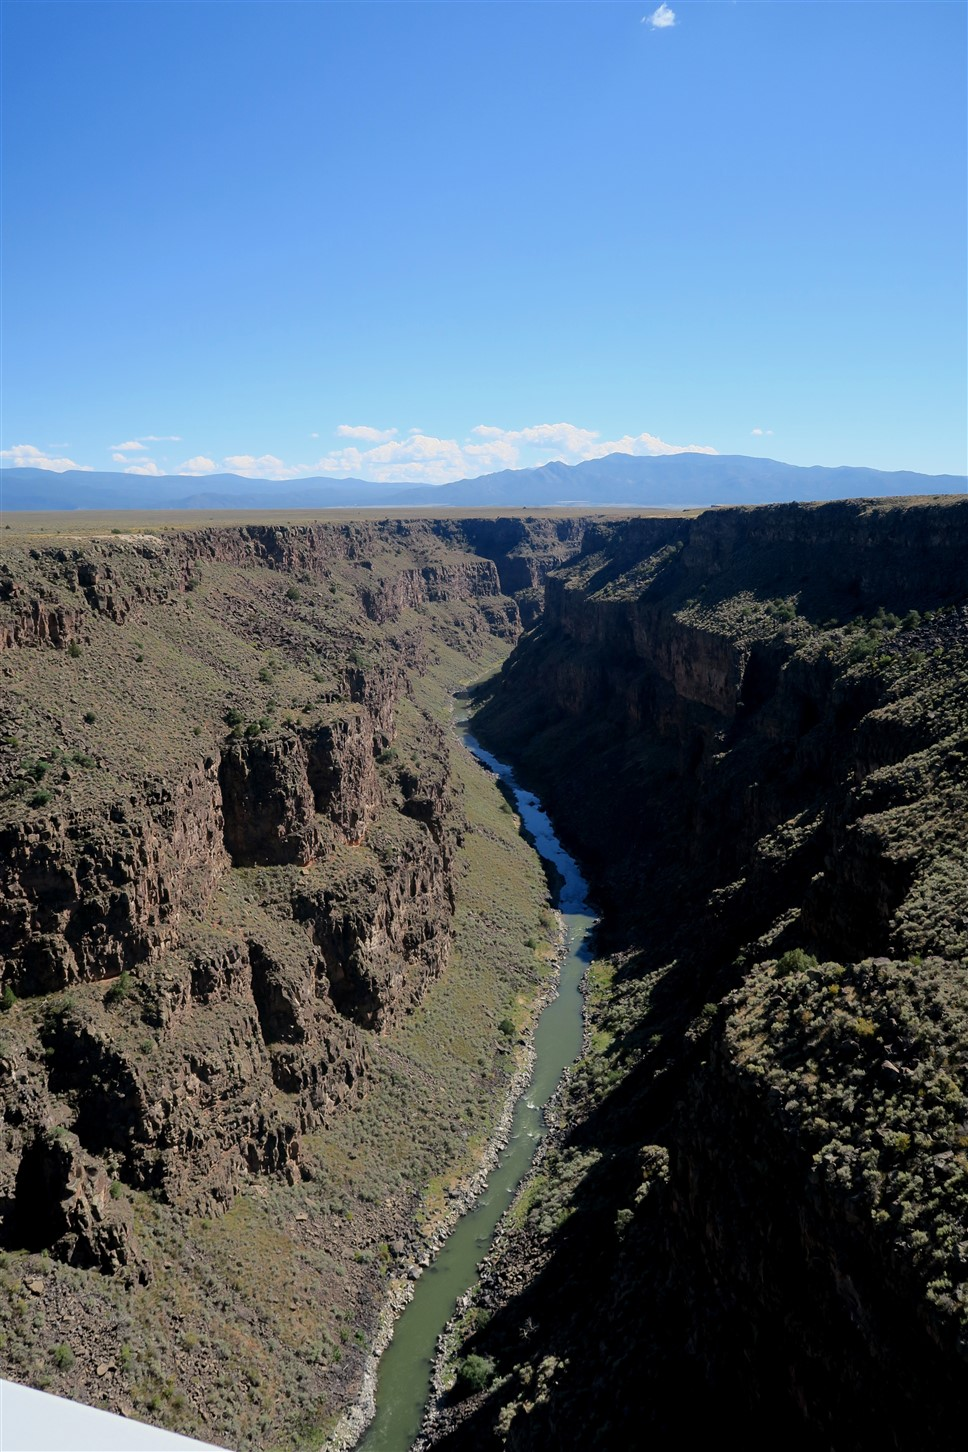 2015 09 20 117 Rio Grande Gorge Bridge NM